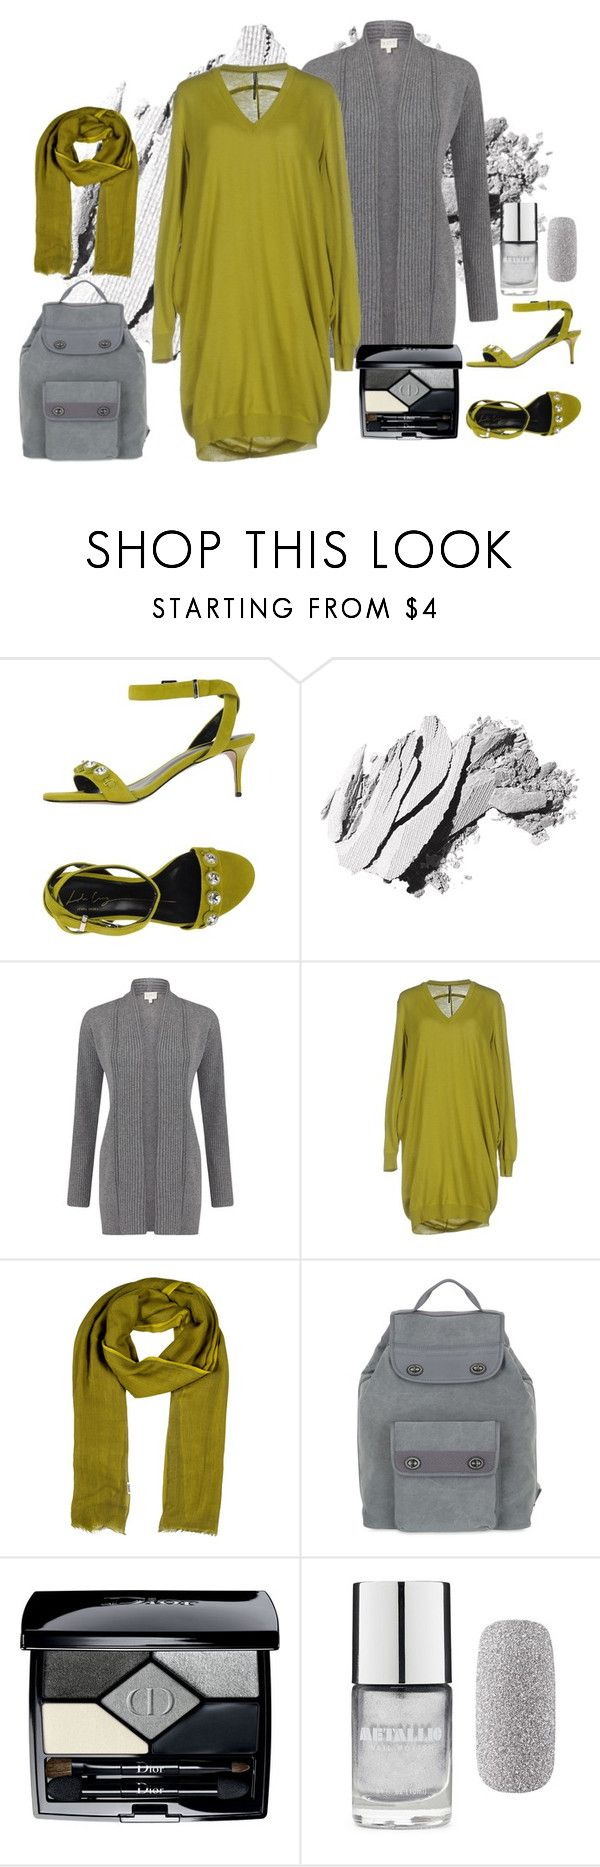 """Pistacchio & ash grey"" by vanya-rosario-guidi ❤ liked on Polyvore featuring Lola Cruz, Bobbi Brown Cosmetics, EAST, Liviana Conti, Hermès, Mandarina Duck, Christian Dior, Forever 21, Ashgrey and pistacchio"